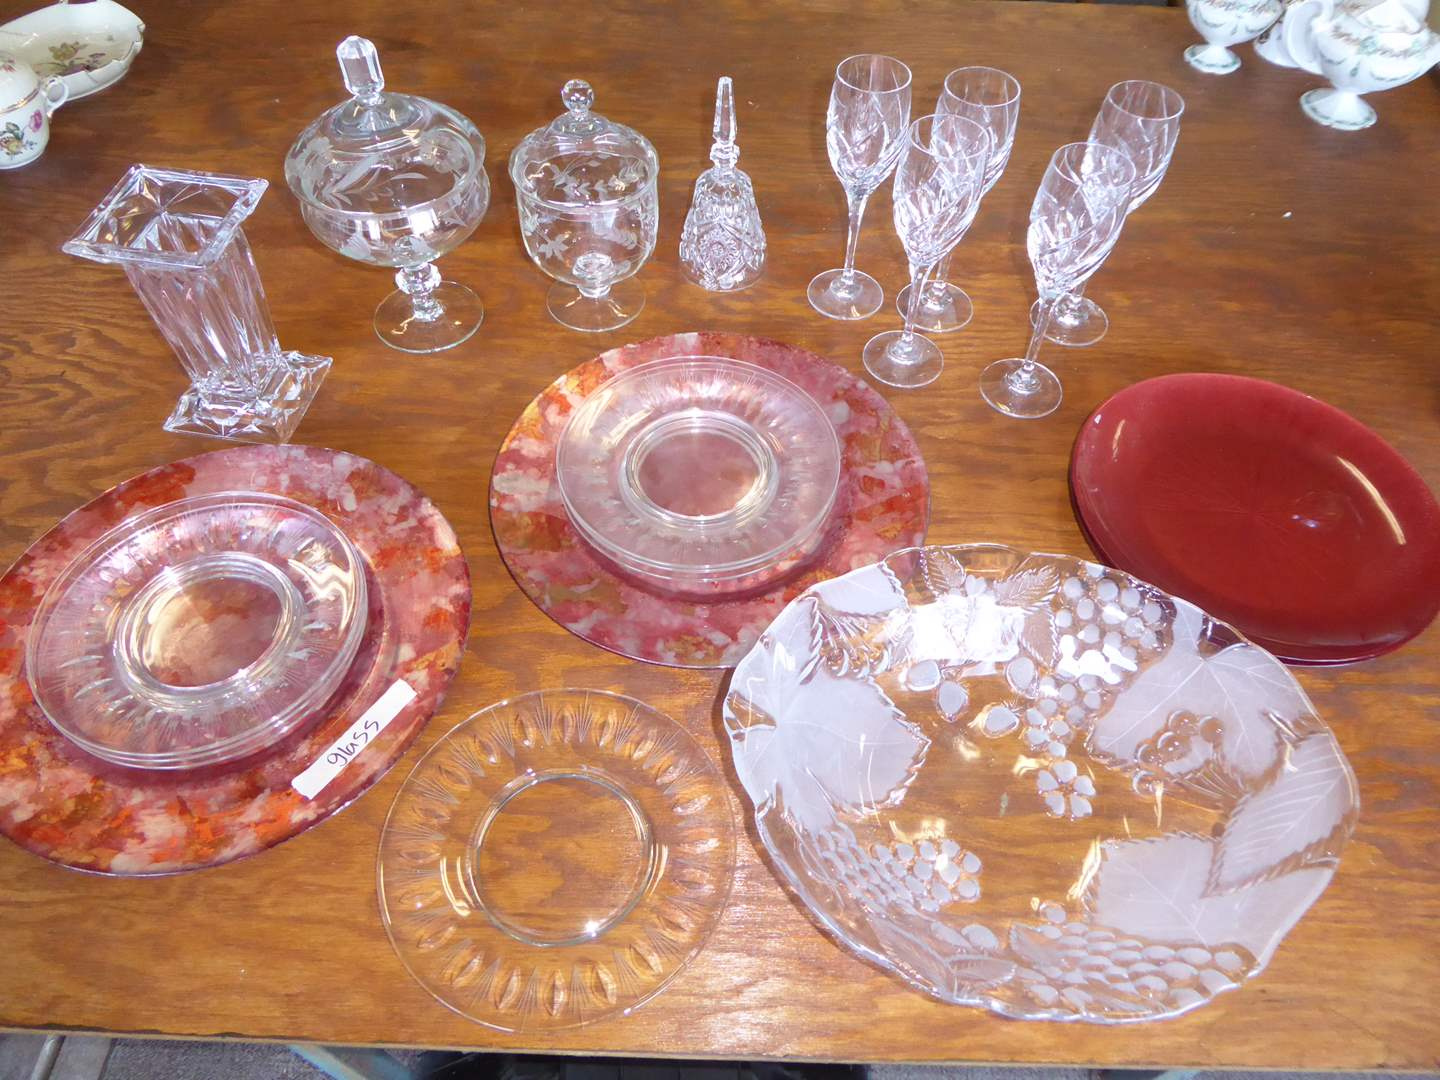 Lot # 4 - Etched Candy Dishes, Stemmed Glasses & Glass Chargers  (main image)